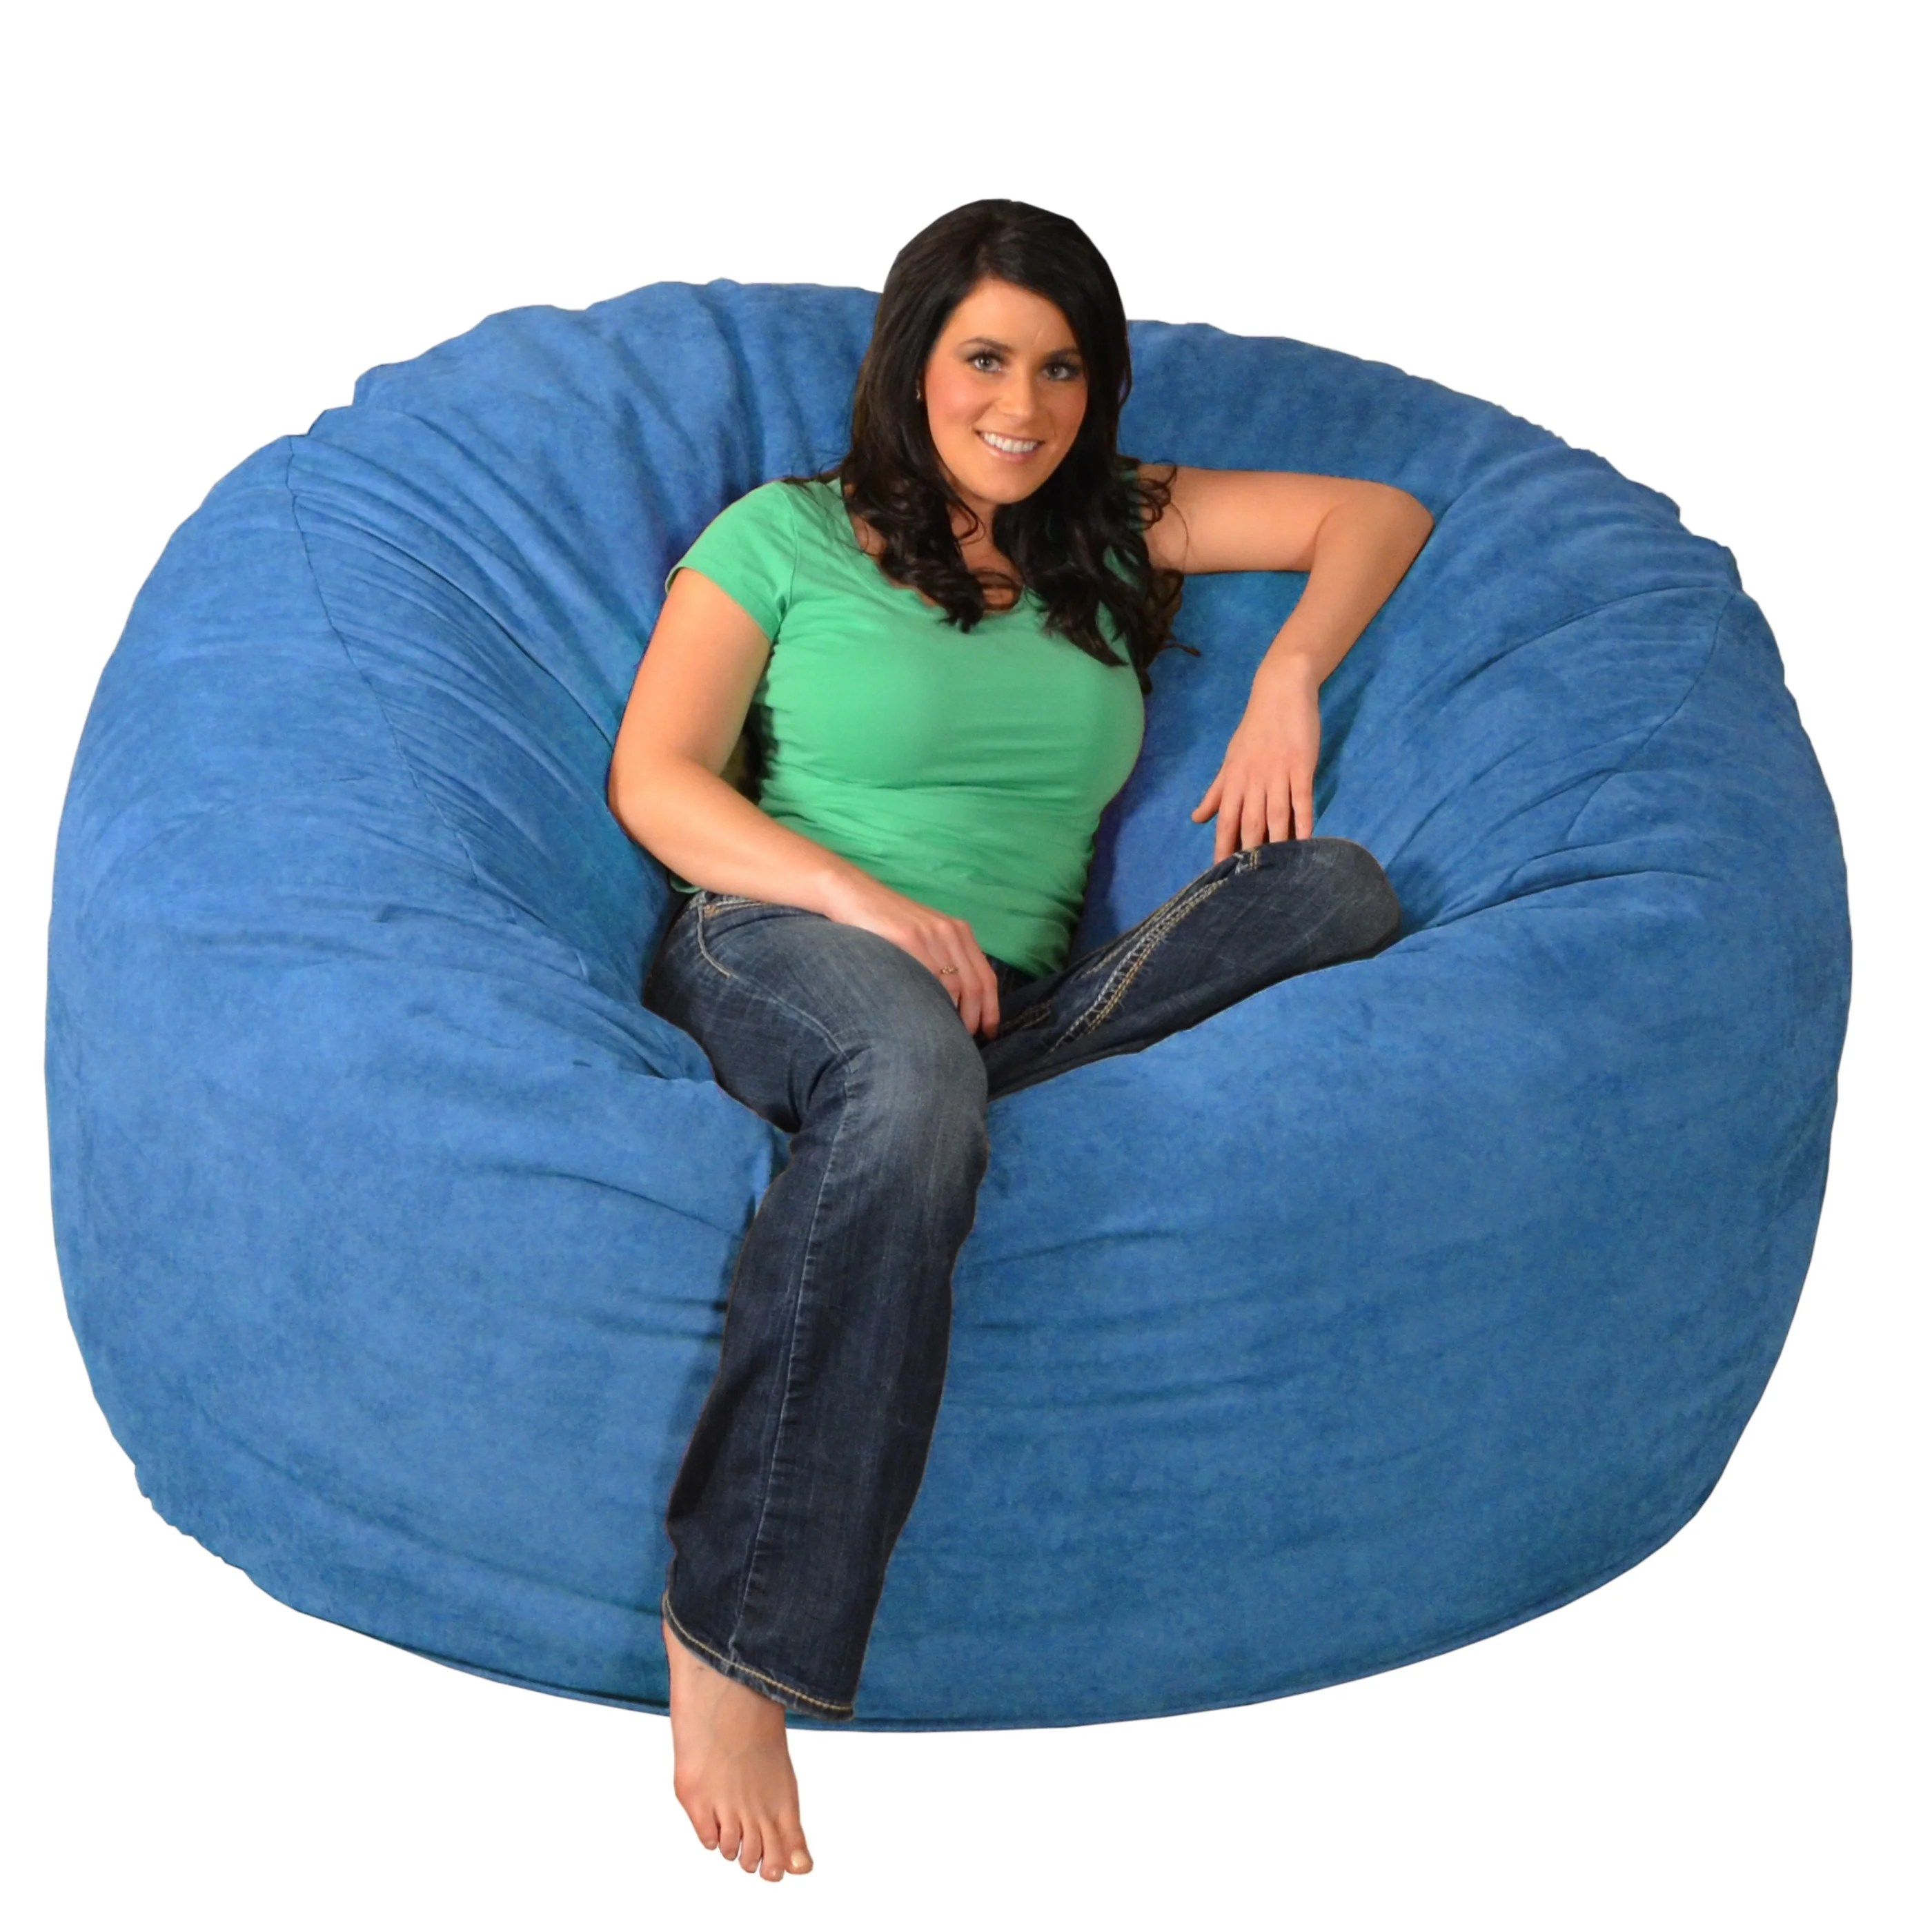 Bean Bags Chair Giant Memory Foam Bean Bag 6 Foot Chair